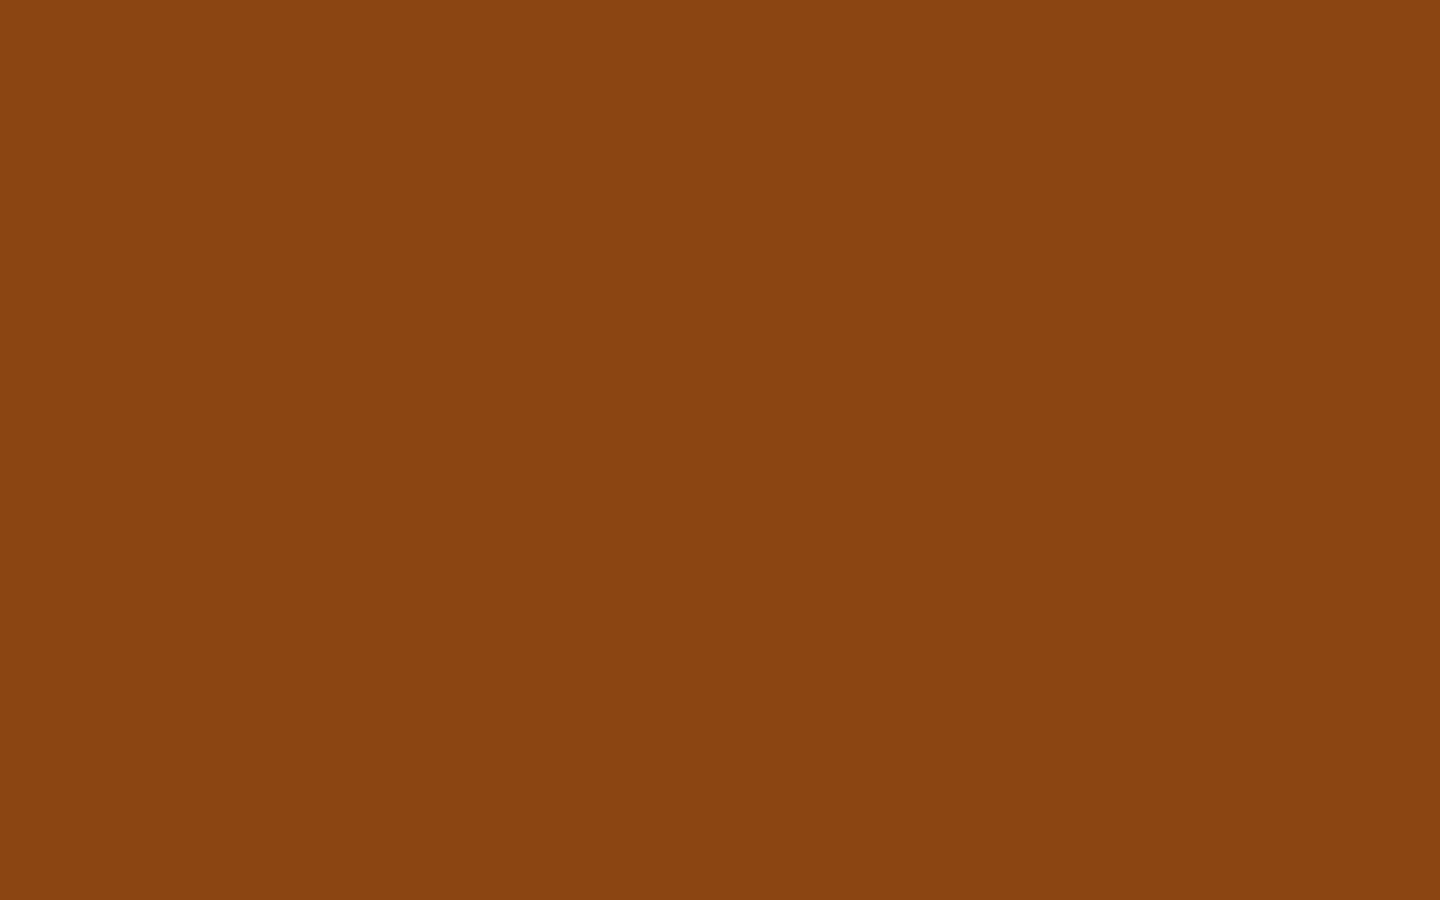 1440x900 Saddle Brown Solid Color Background